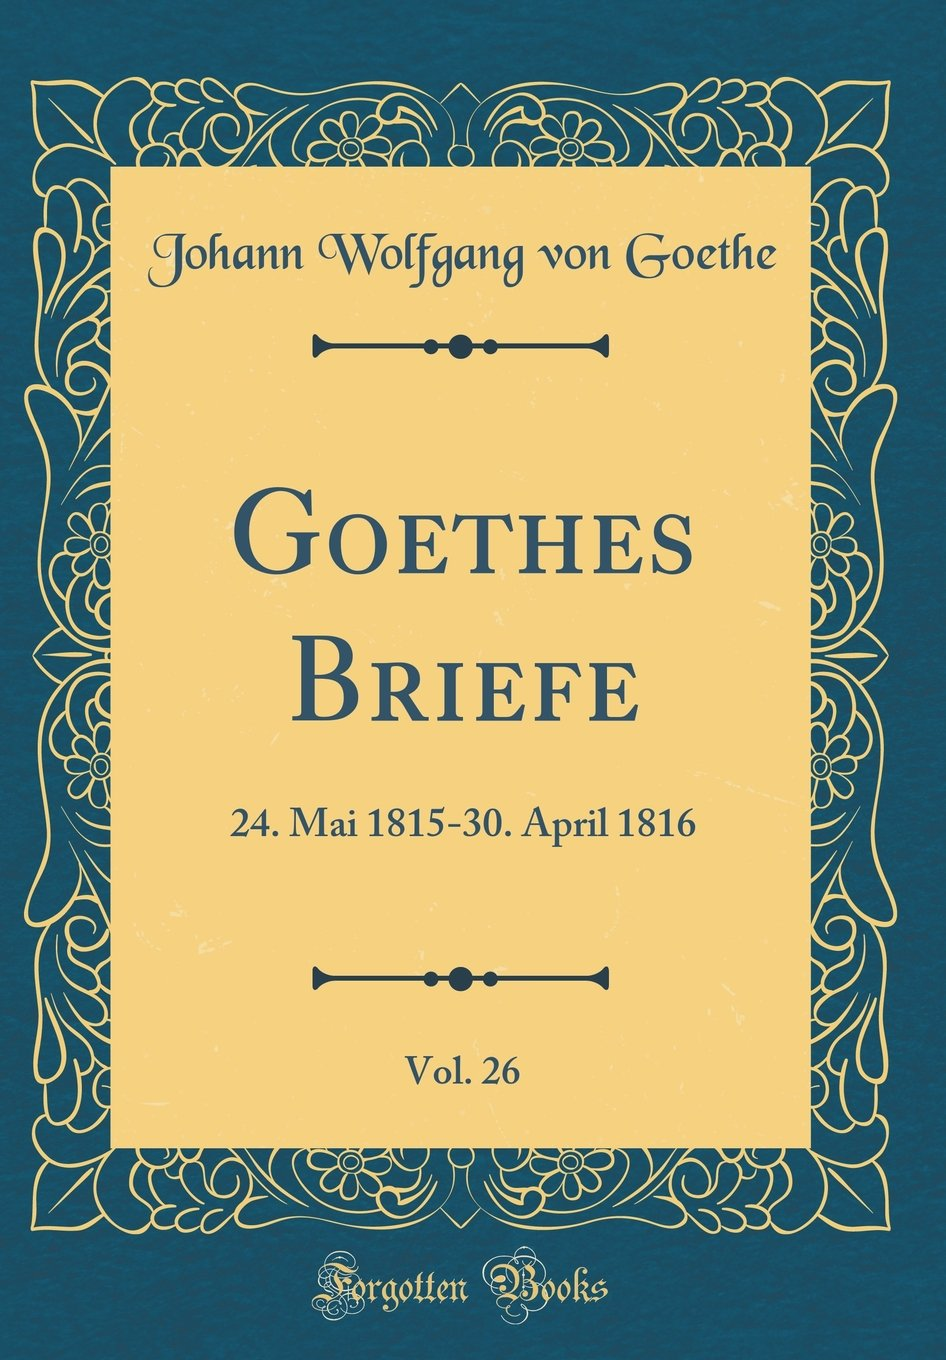 Goethes Briefe, Vol. 26: 24. Mai 1815-30. April 1816 (Classic Reprint) (German Edition) PDF